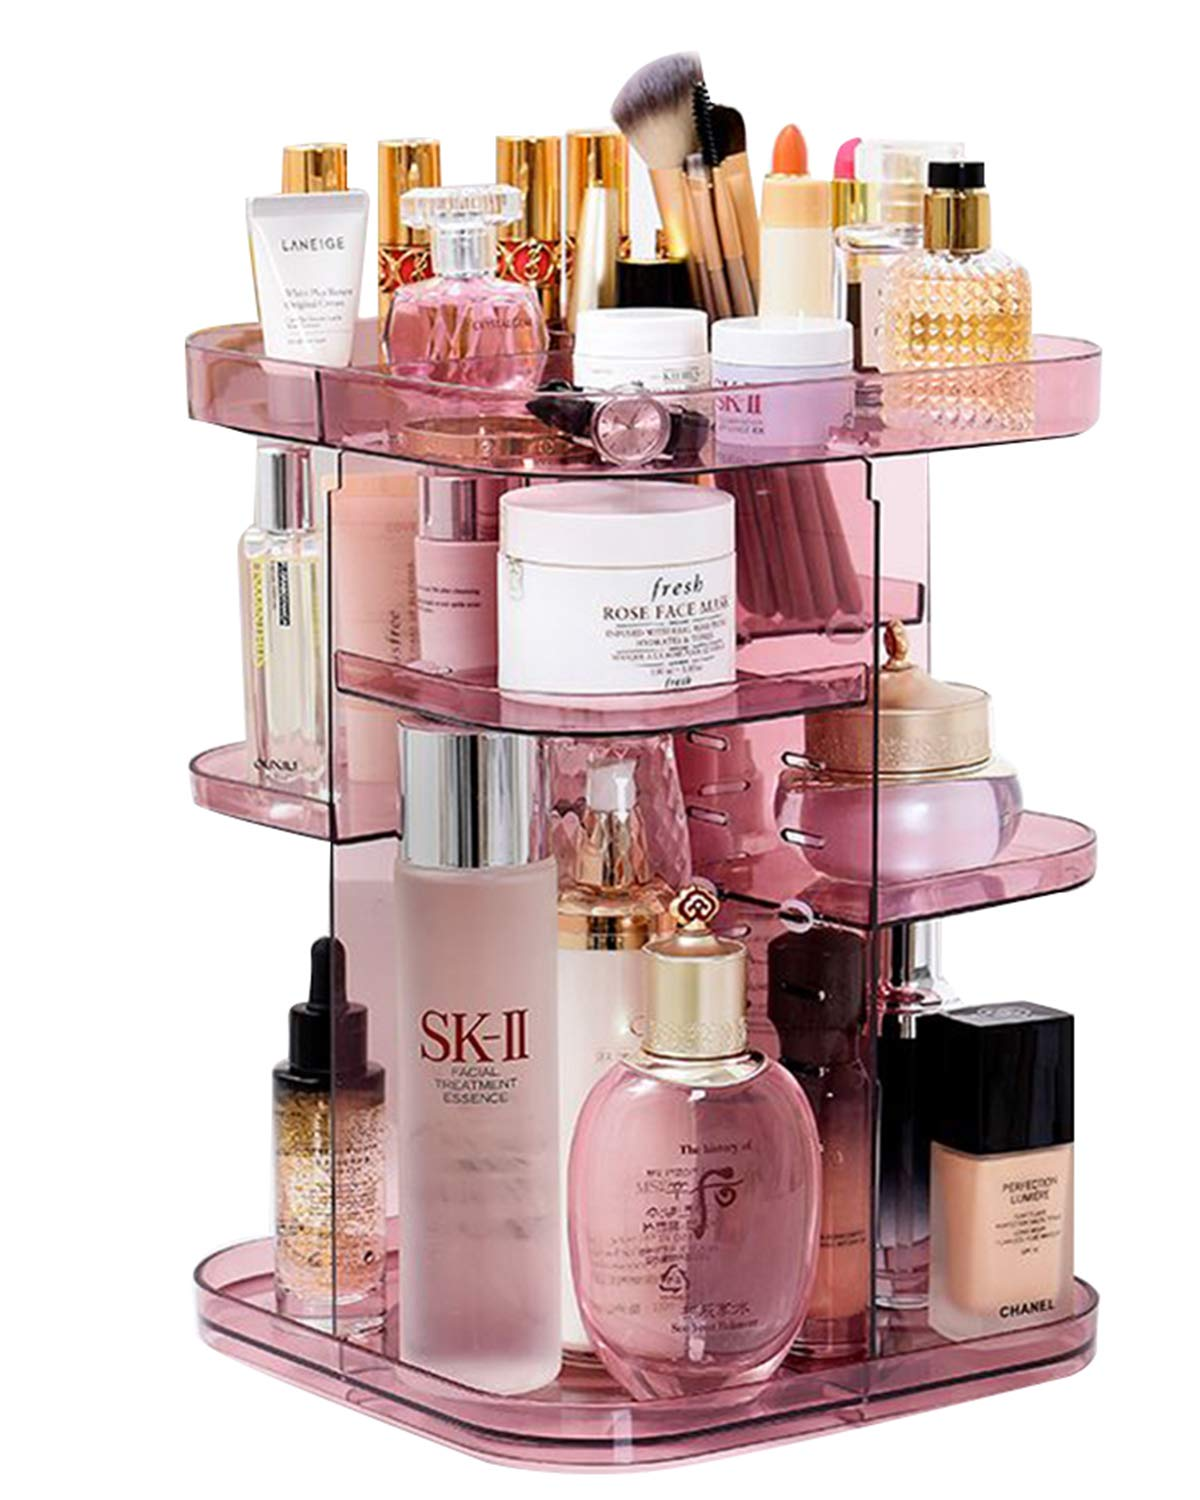 Raniaco 360 Rotating Makeup Organizer Countertop, Clear Acrylic Large Cosmetic Display Case for Brushes Lipsticks Rings, Gift for Girlfriend Lovers Wife Christmas, Valentine's Day, Mother's Day